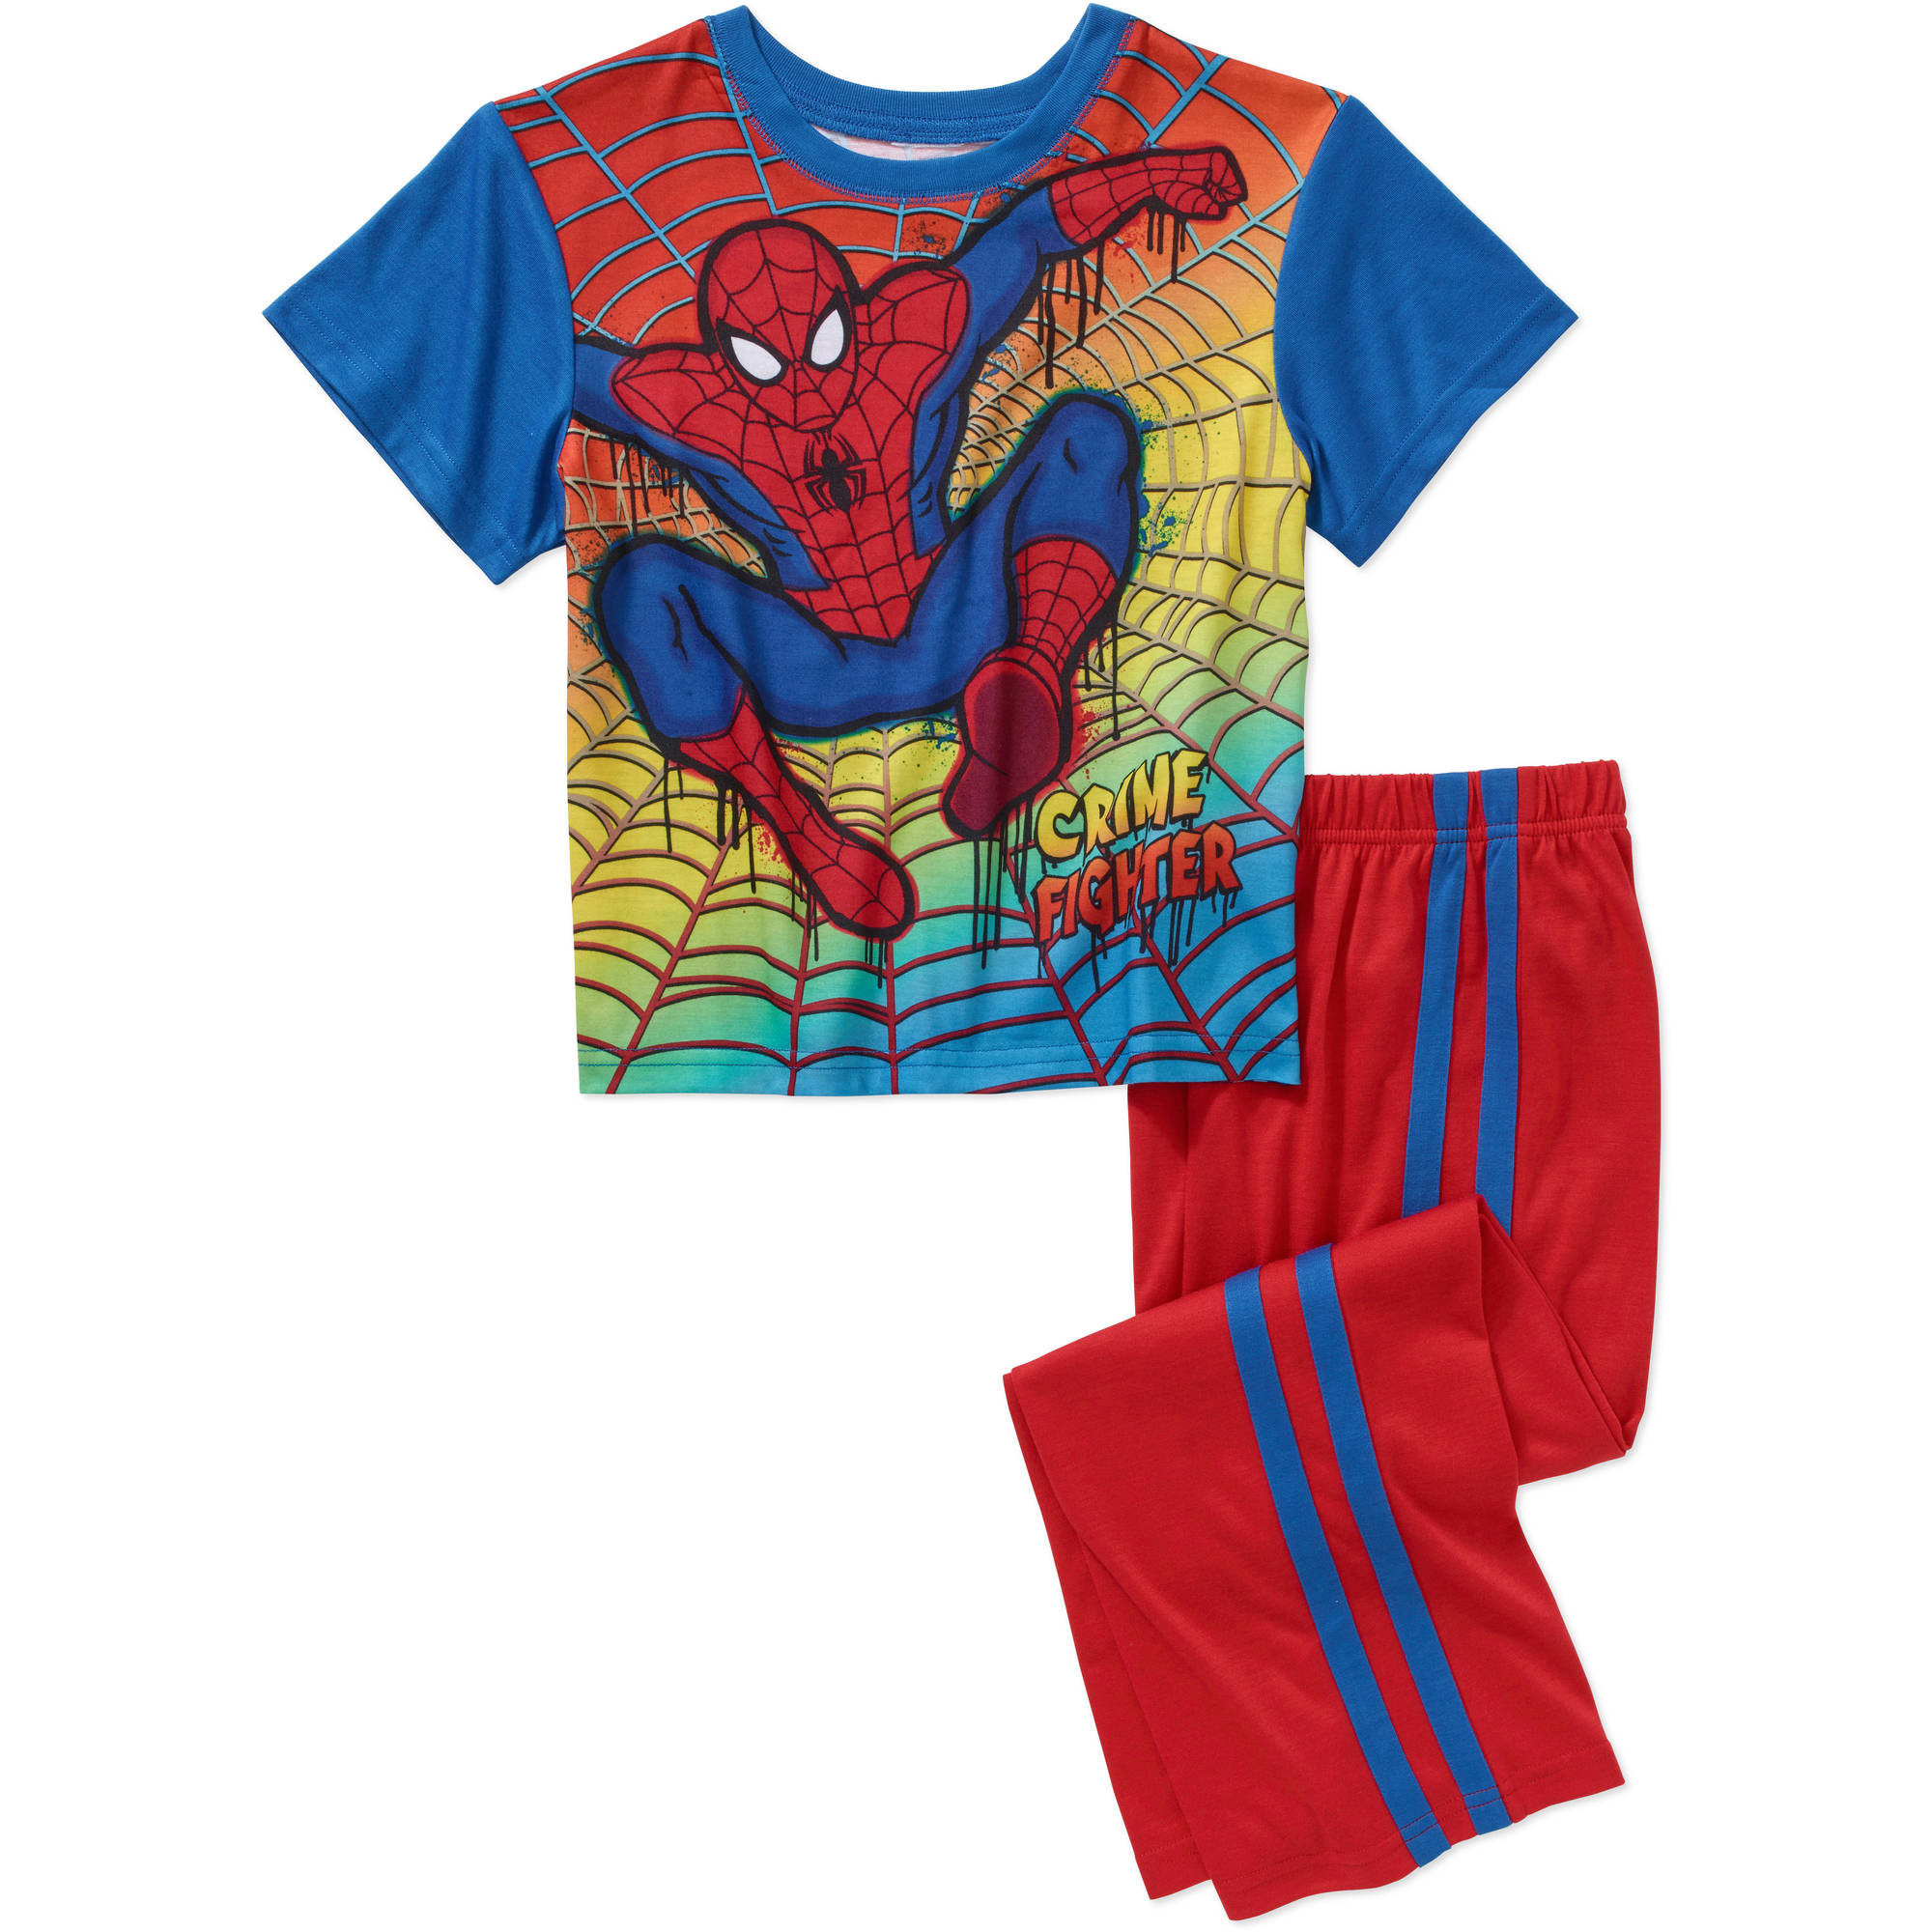 Marvel Spiderman Boys' License Short Sleeve Pajama Top and Sleep Pant Set